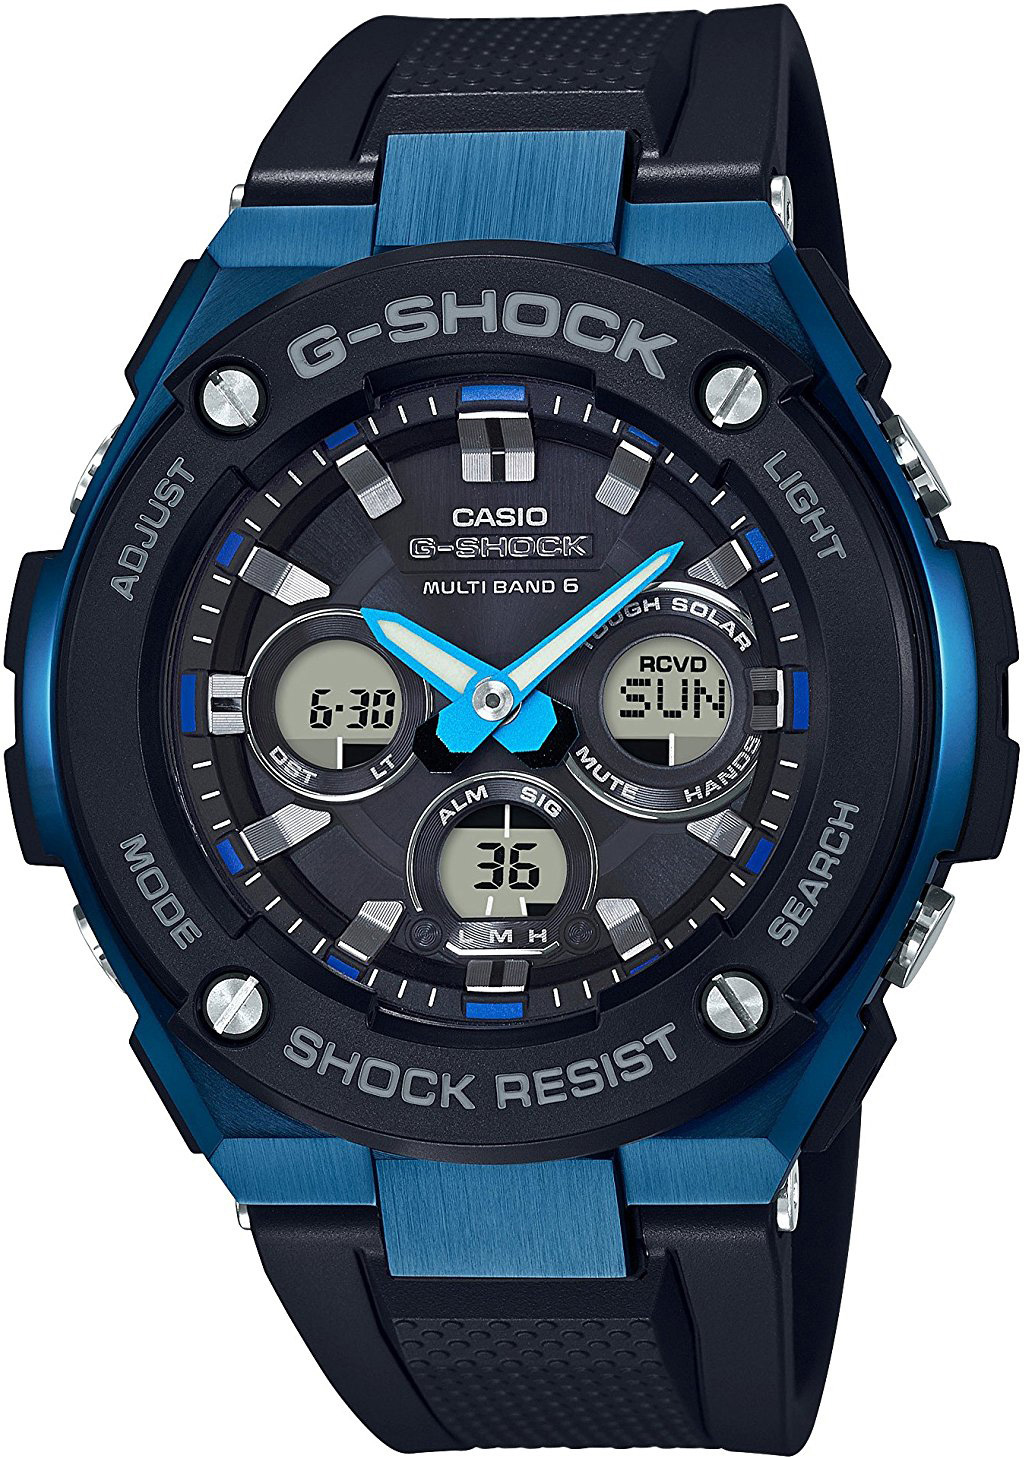 Casio G-shock G-Steel GST-W300G-1A2 автомойка huter m165 рw